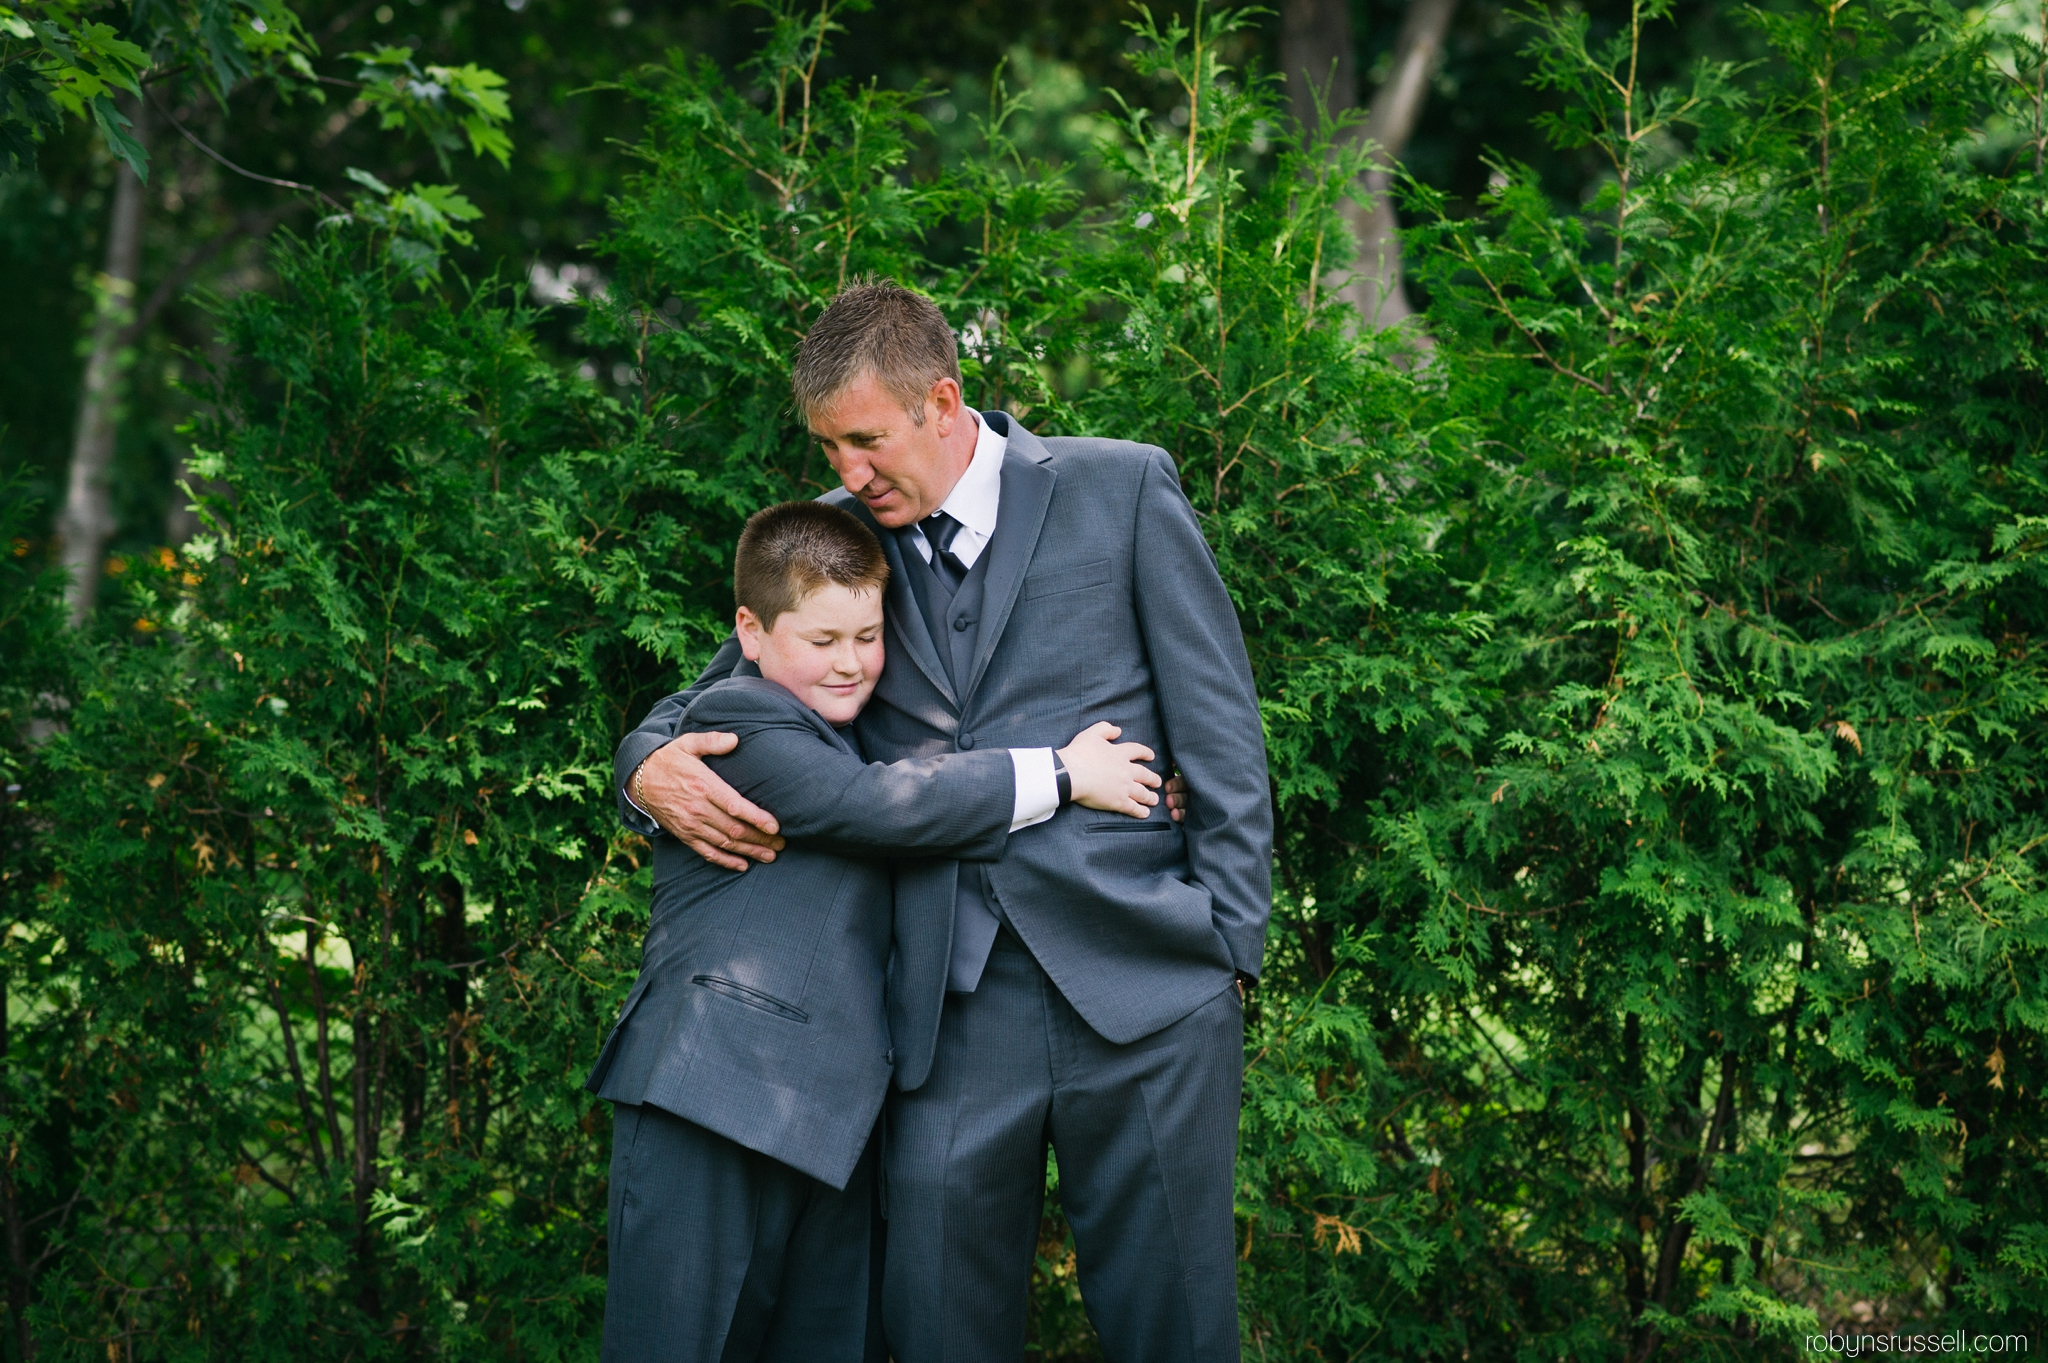 5-groom-and-son-emotional-moment-before-ceremony.jpg